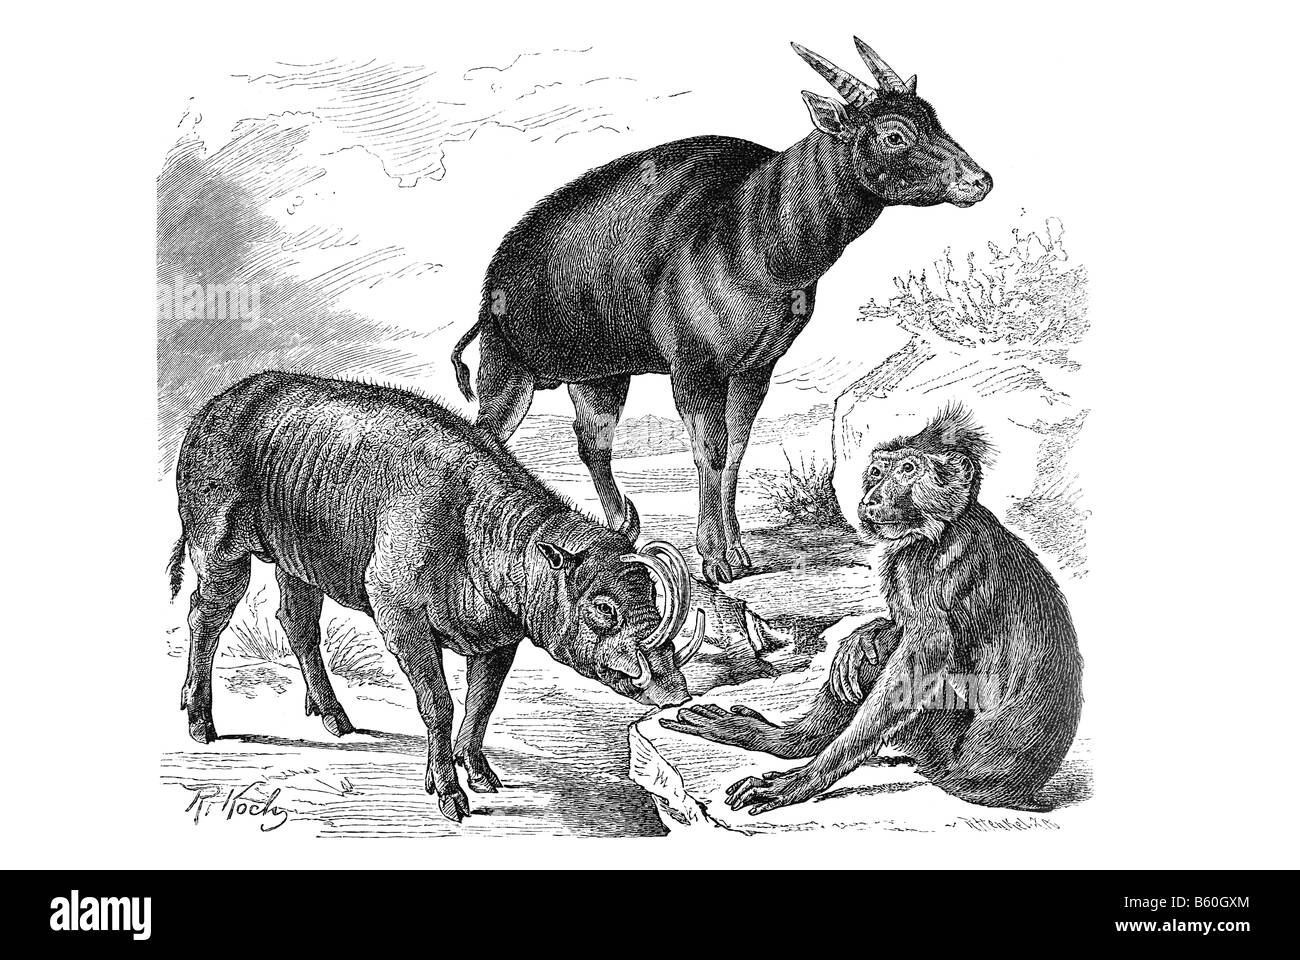 Anoa buffalo & Golden Babirusa & Crested Black Macaque - Stock Image